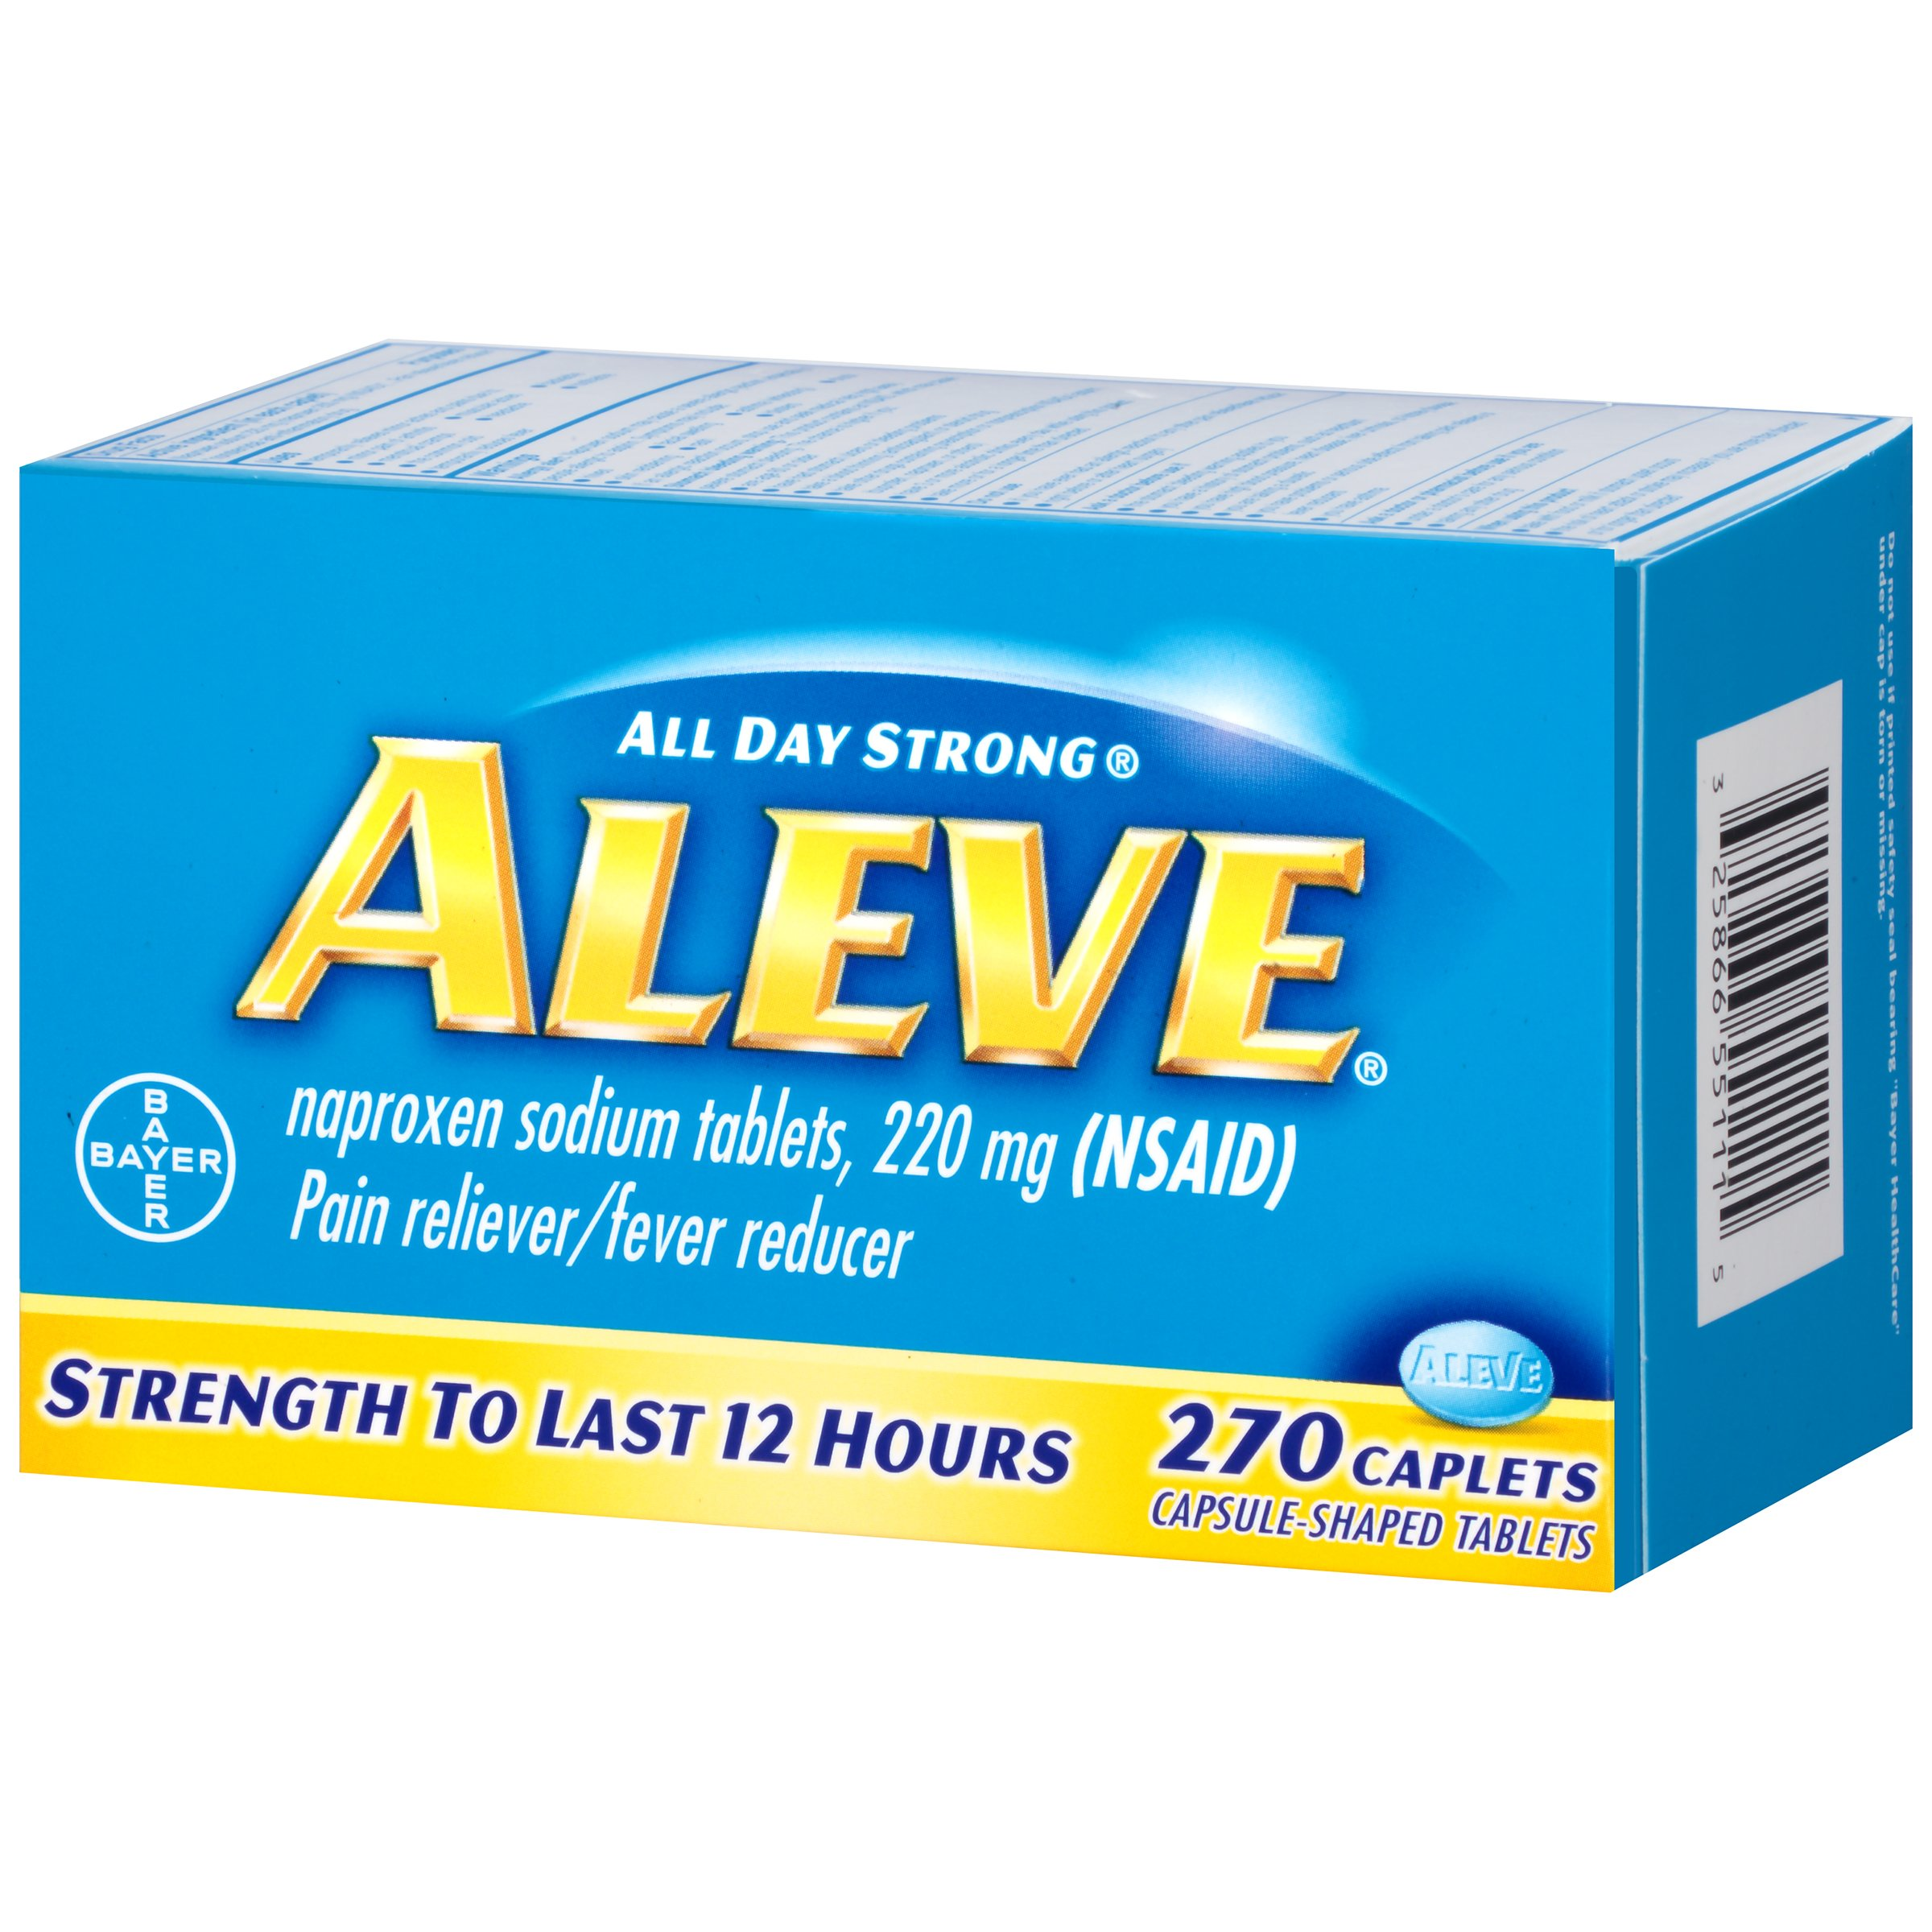 Aleve Caplets, Naproxen Sodium 220 mg (NSAID), Pain Reliever/Fever Reducer, #1 Orthopedic Surgeon Recommended, 270 Count by Aleve